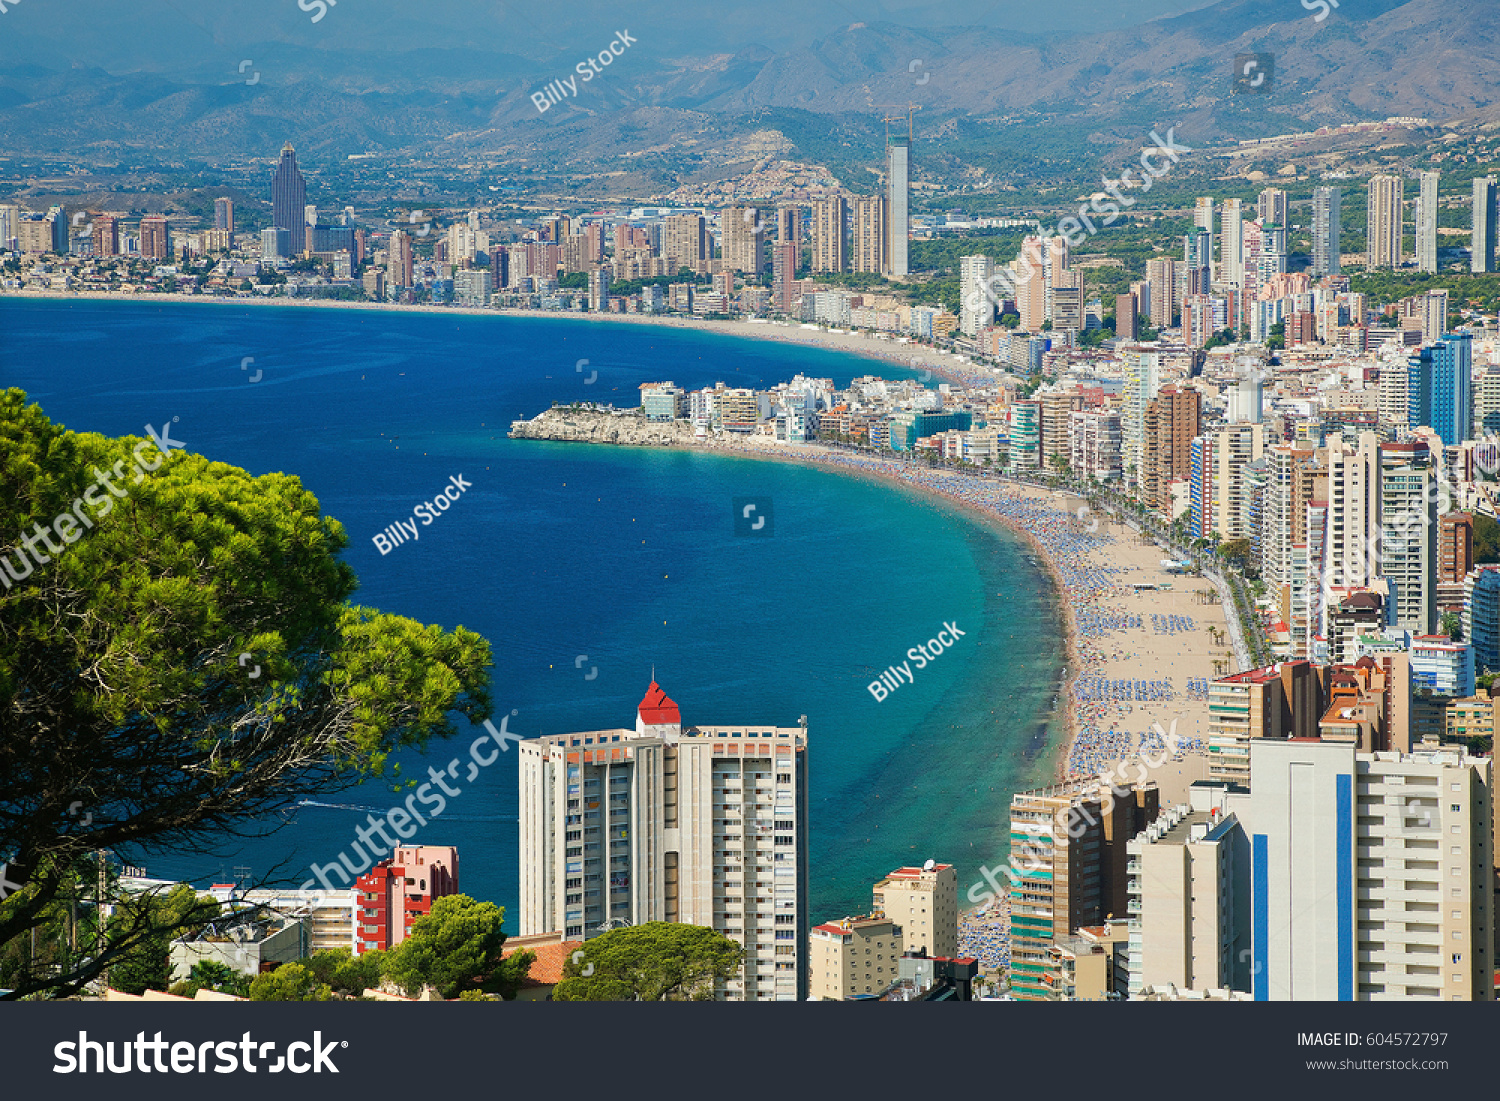 Benidorm costa blanca alicante spain stock photo 604572797 - Stock uno alicante ...